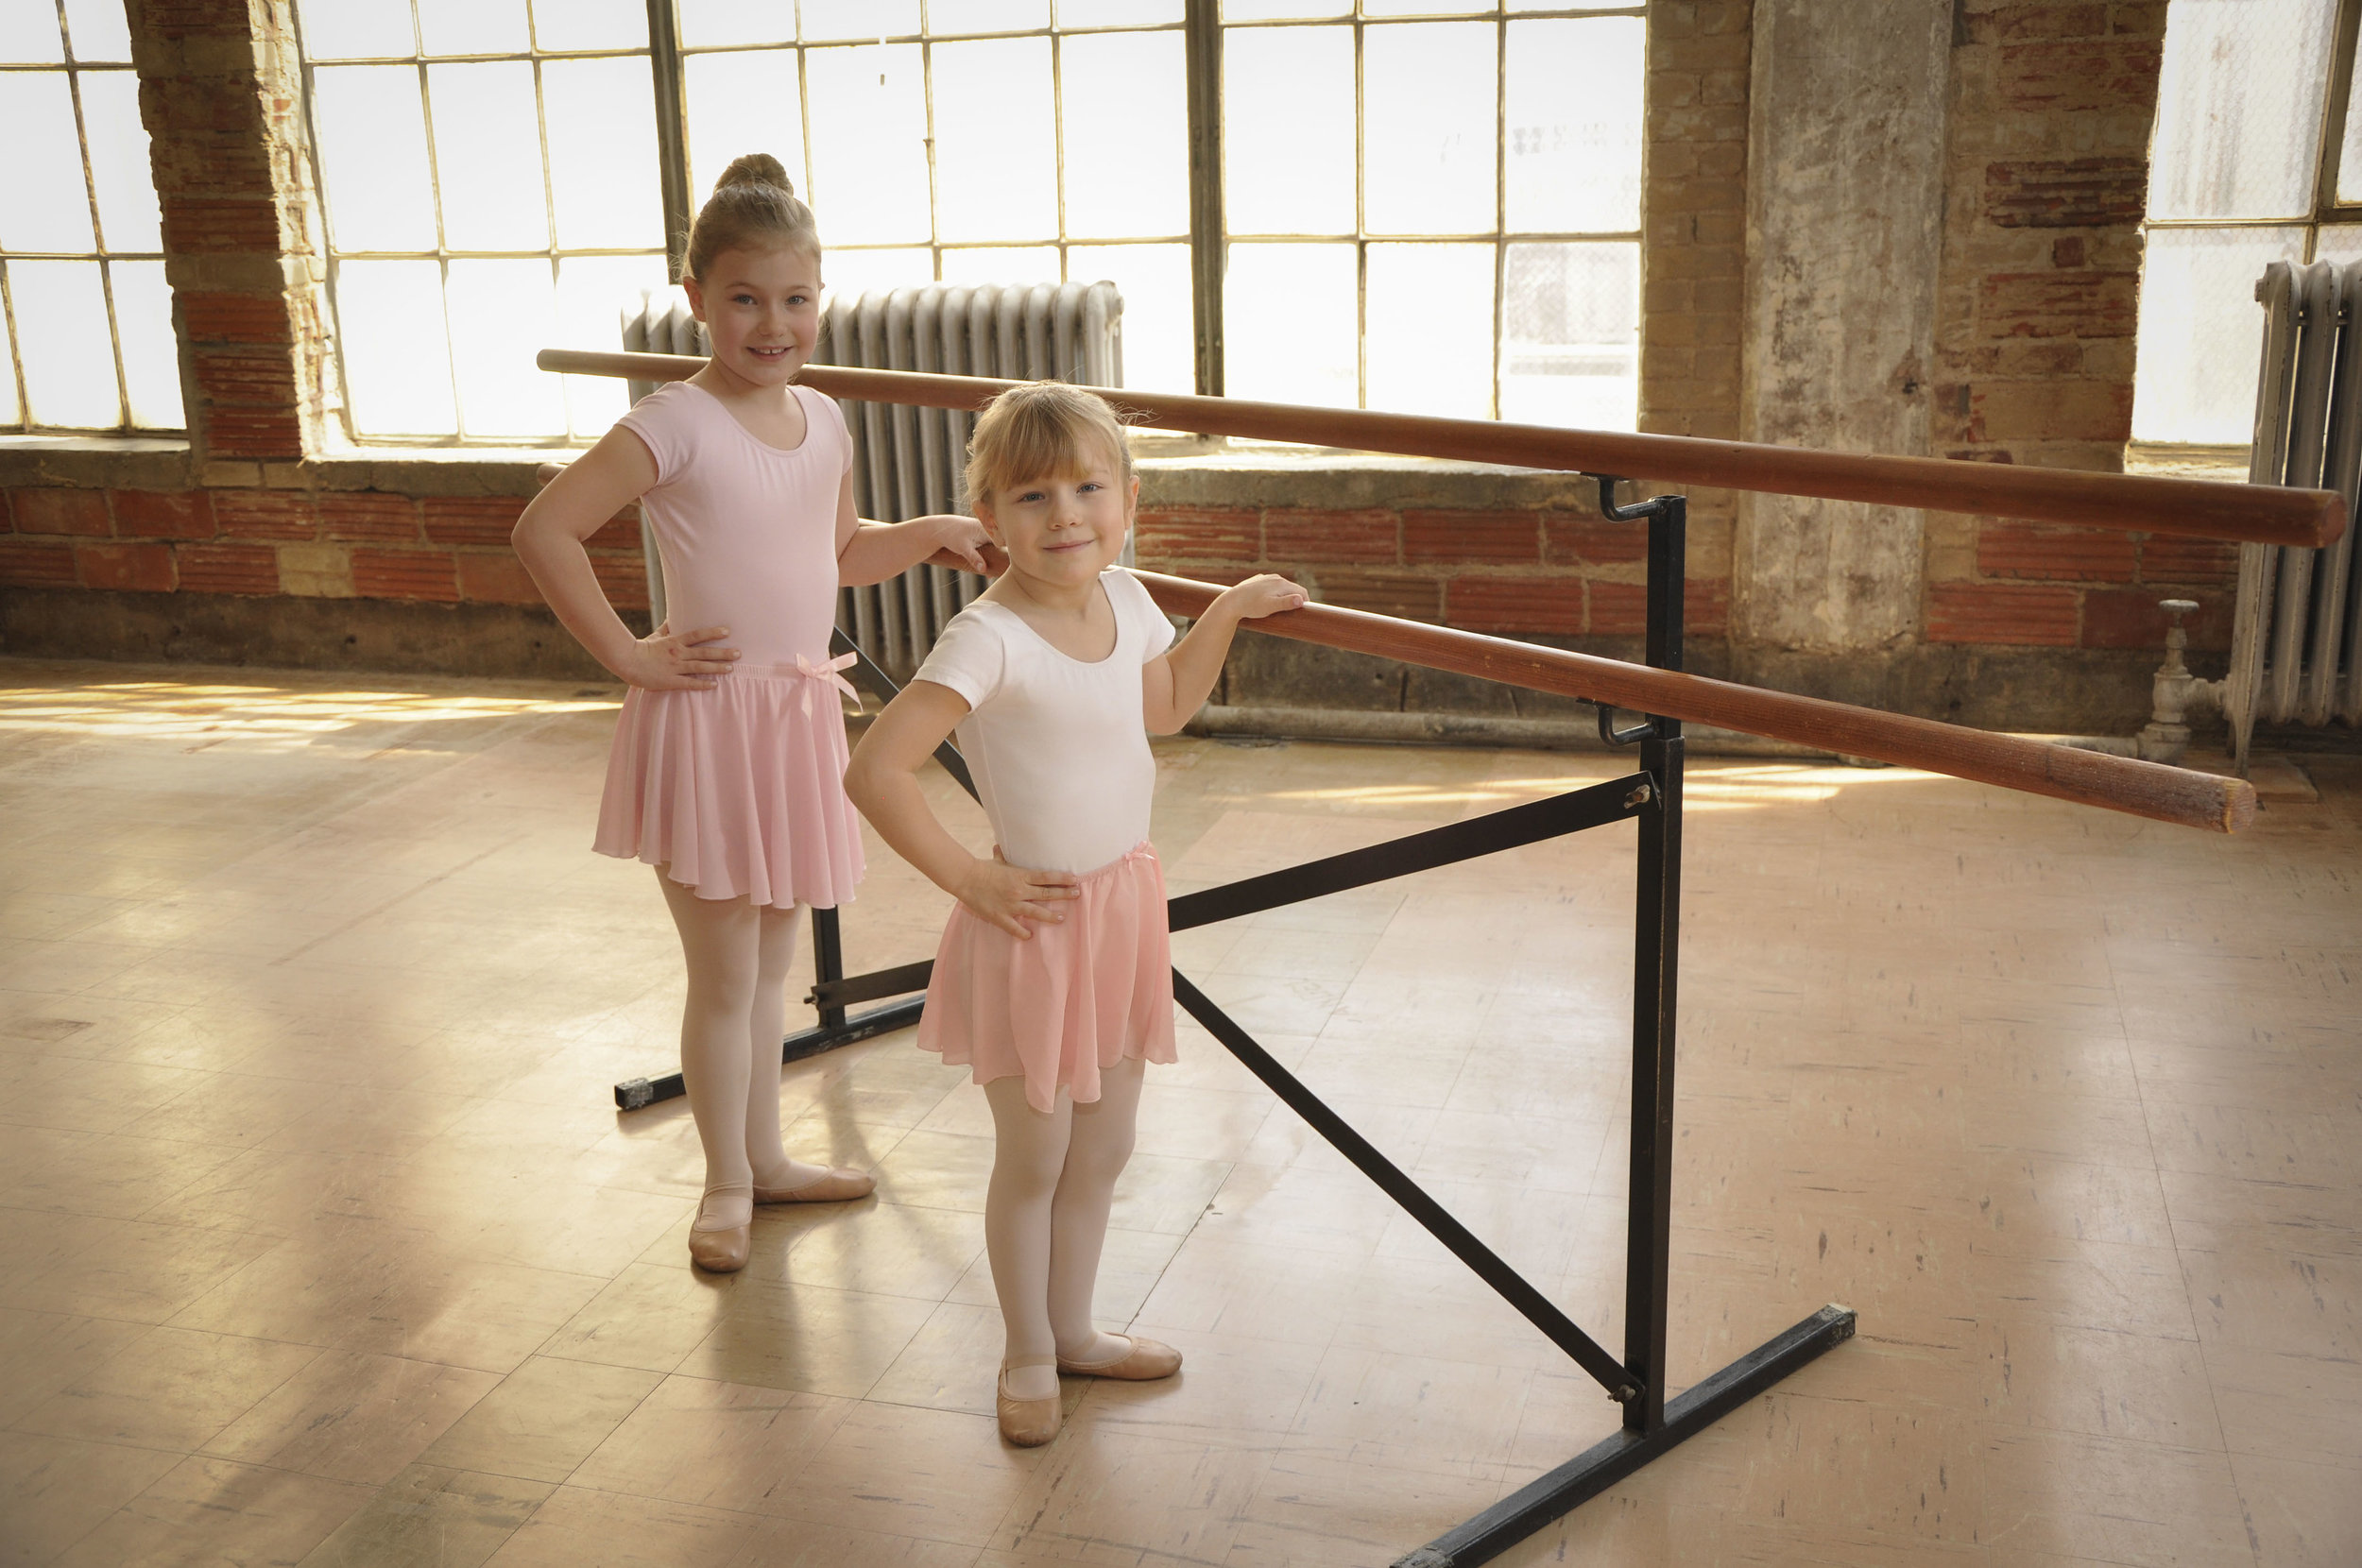 leap 'n learn for 6 year olds - In LNL 6 dance classes focus on primary ballet concepts with greater complexity using the Leap 'N Learn curriculum. Students now perform exercises in a